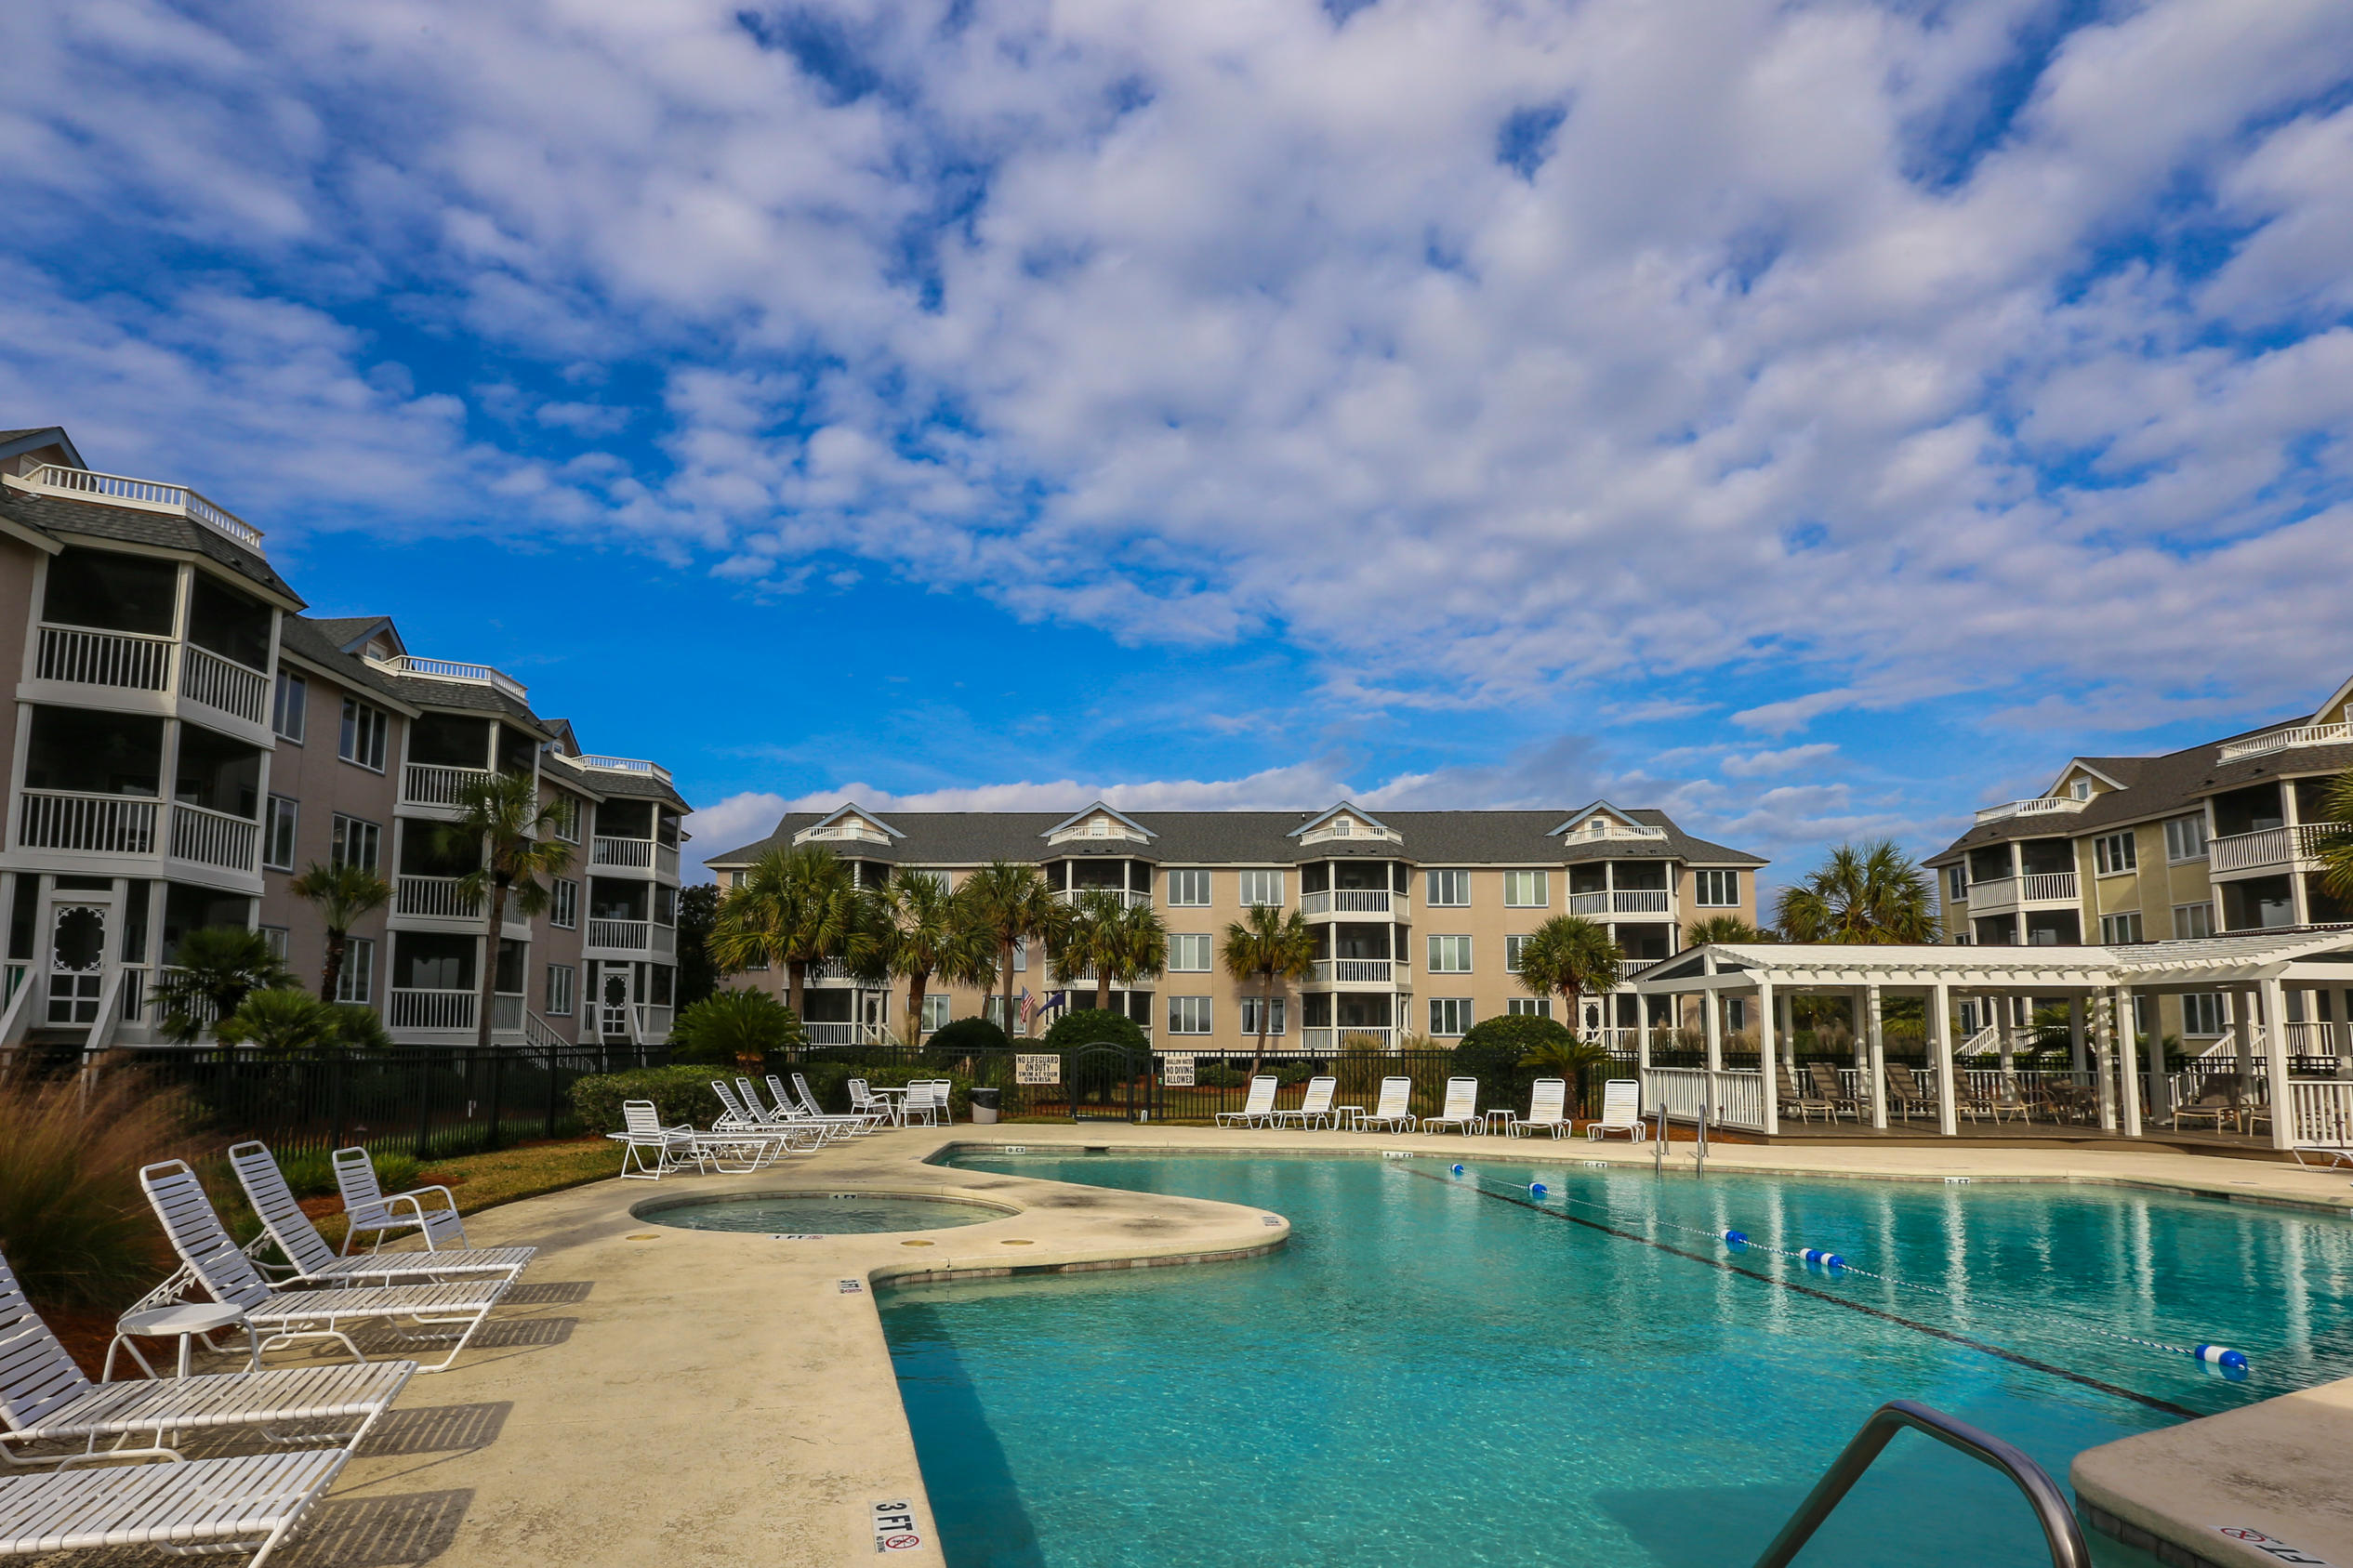 Wild Dunes Homes For Sale - 204-I Tidewater, Isle of Palms, SC - 17